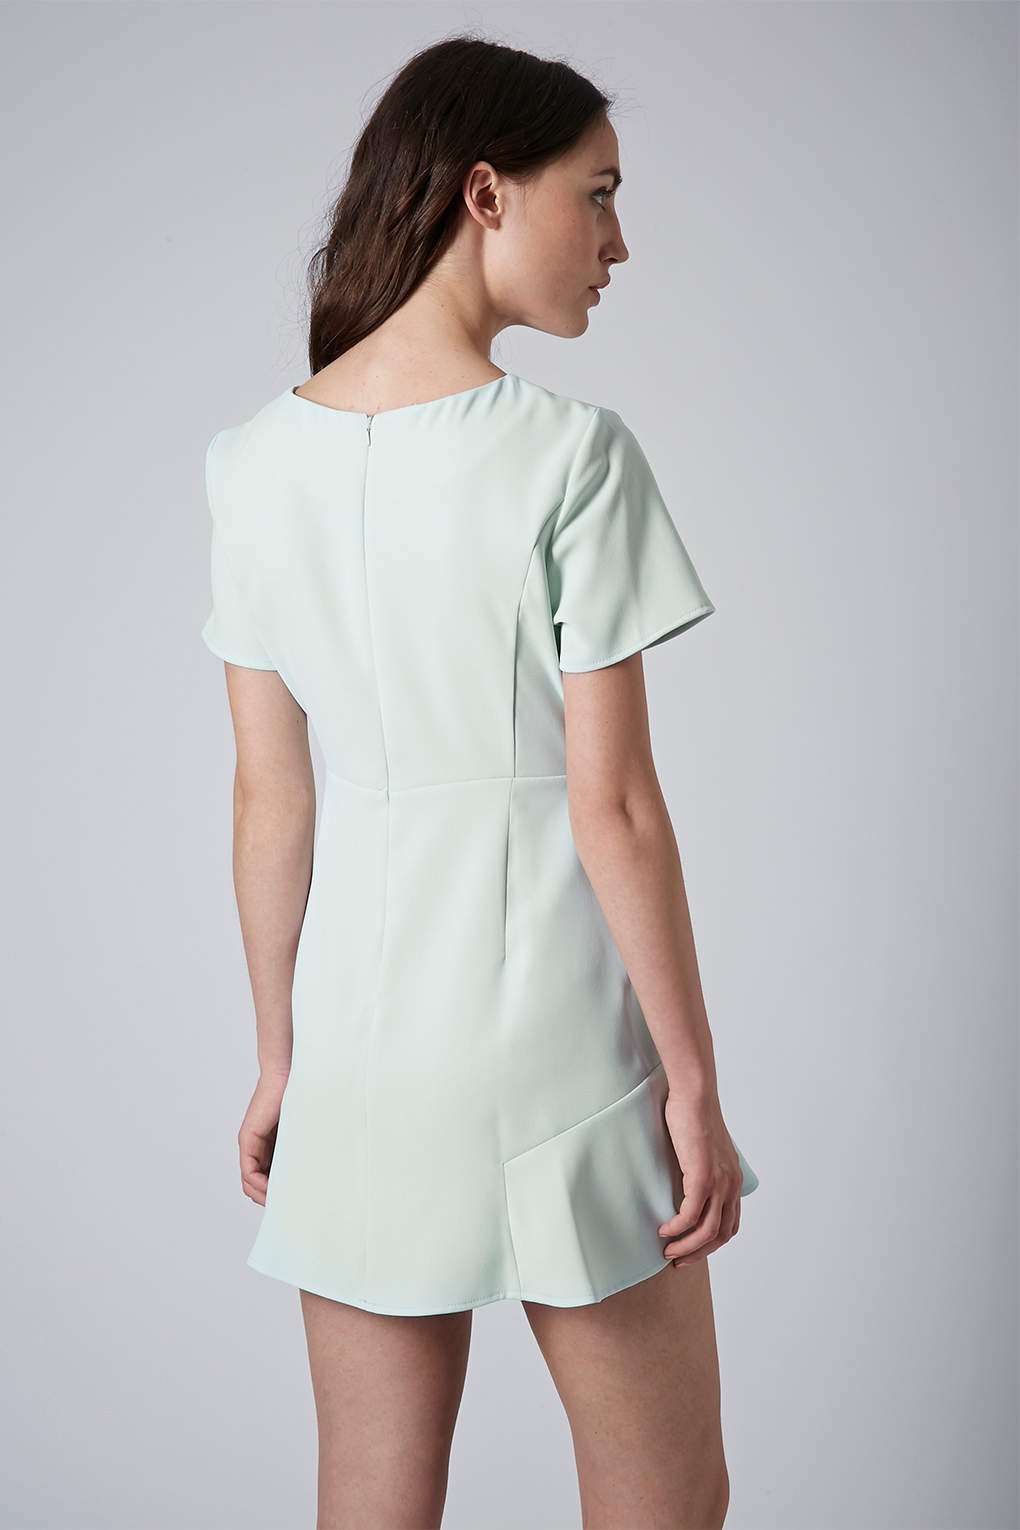 Topshop Petite Fit And Flare Crepe Dress In Mint Green